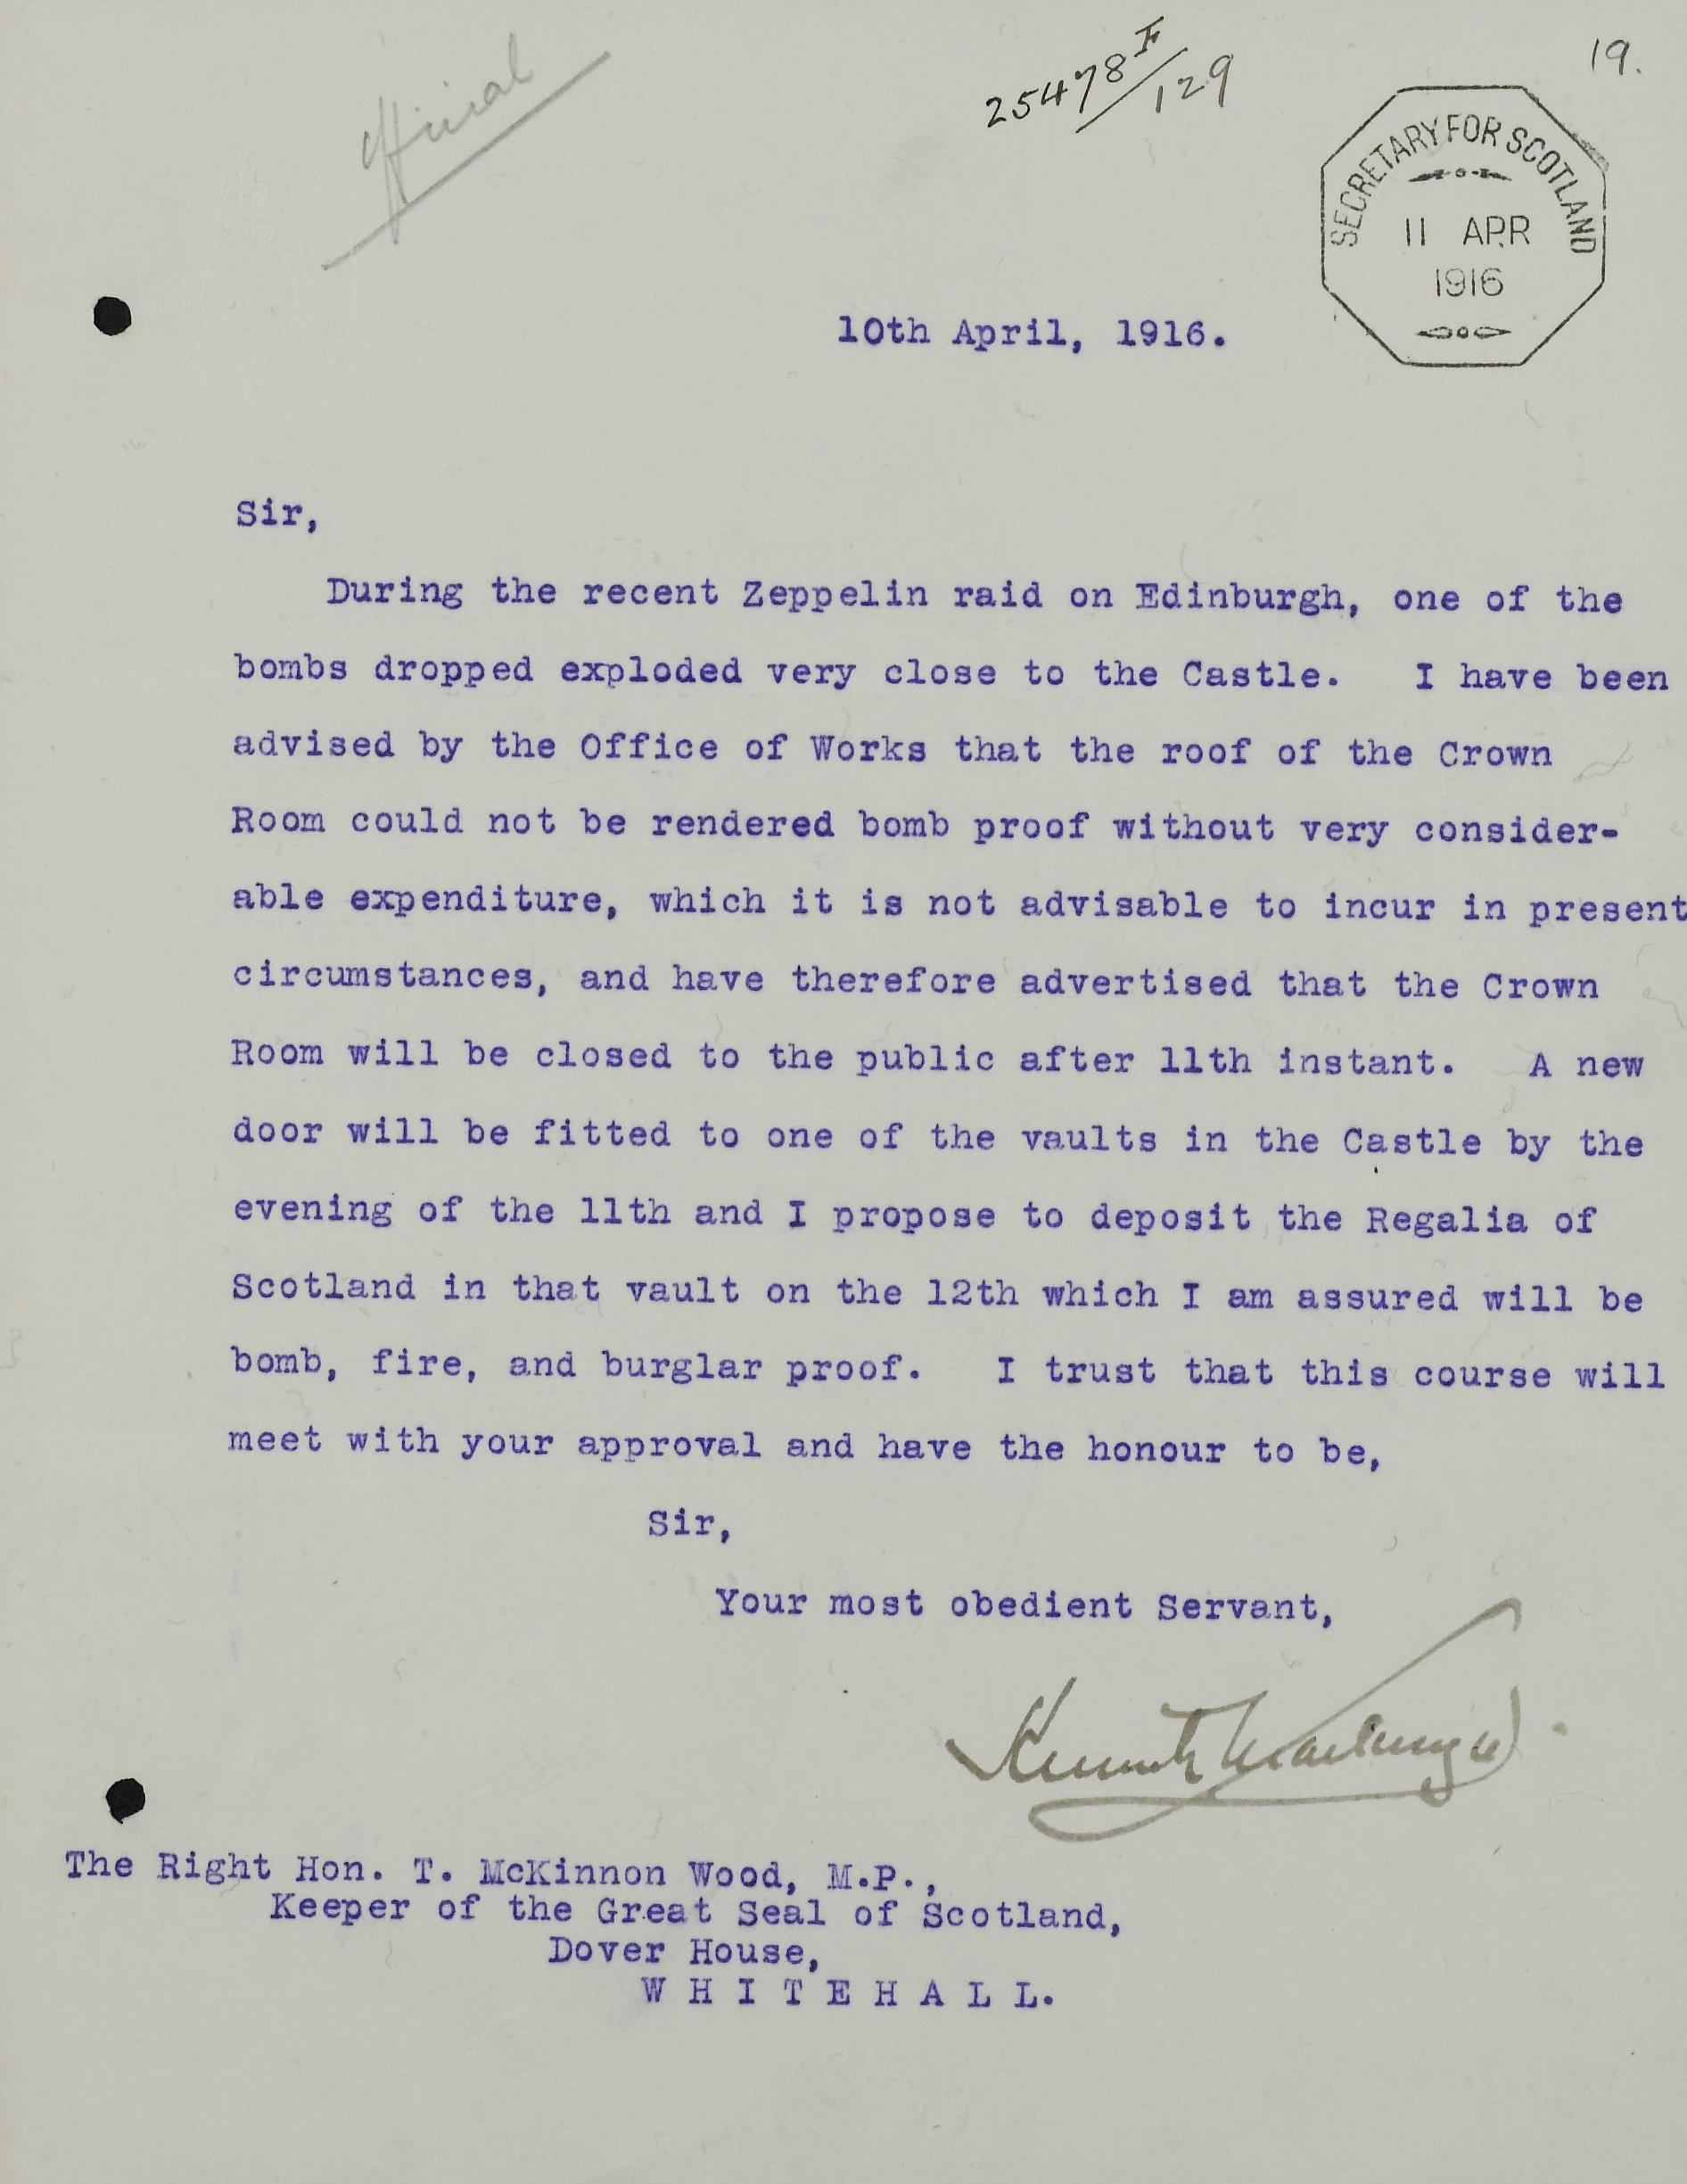 Letter to the Keeper of the Great Seal of Scotland regarding a place of safety in which to store the Scottish Regalia, 1916, National Records of Scotland, HH31/21/1 fol.19